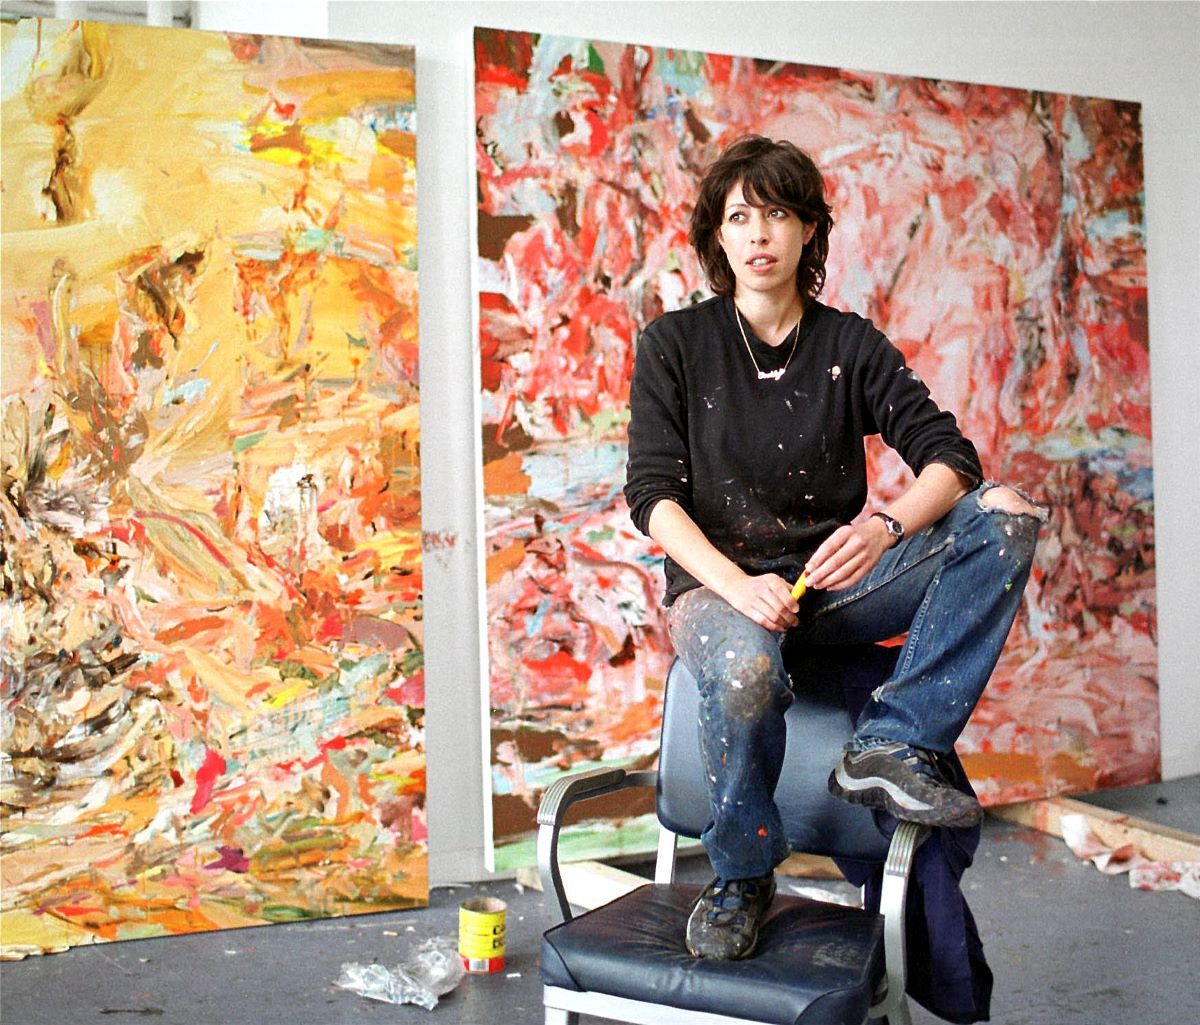 Cecily Brown in her studio, New York, 2001. Photo by Dave Howells. Courtesy of Gagosian.